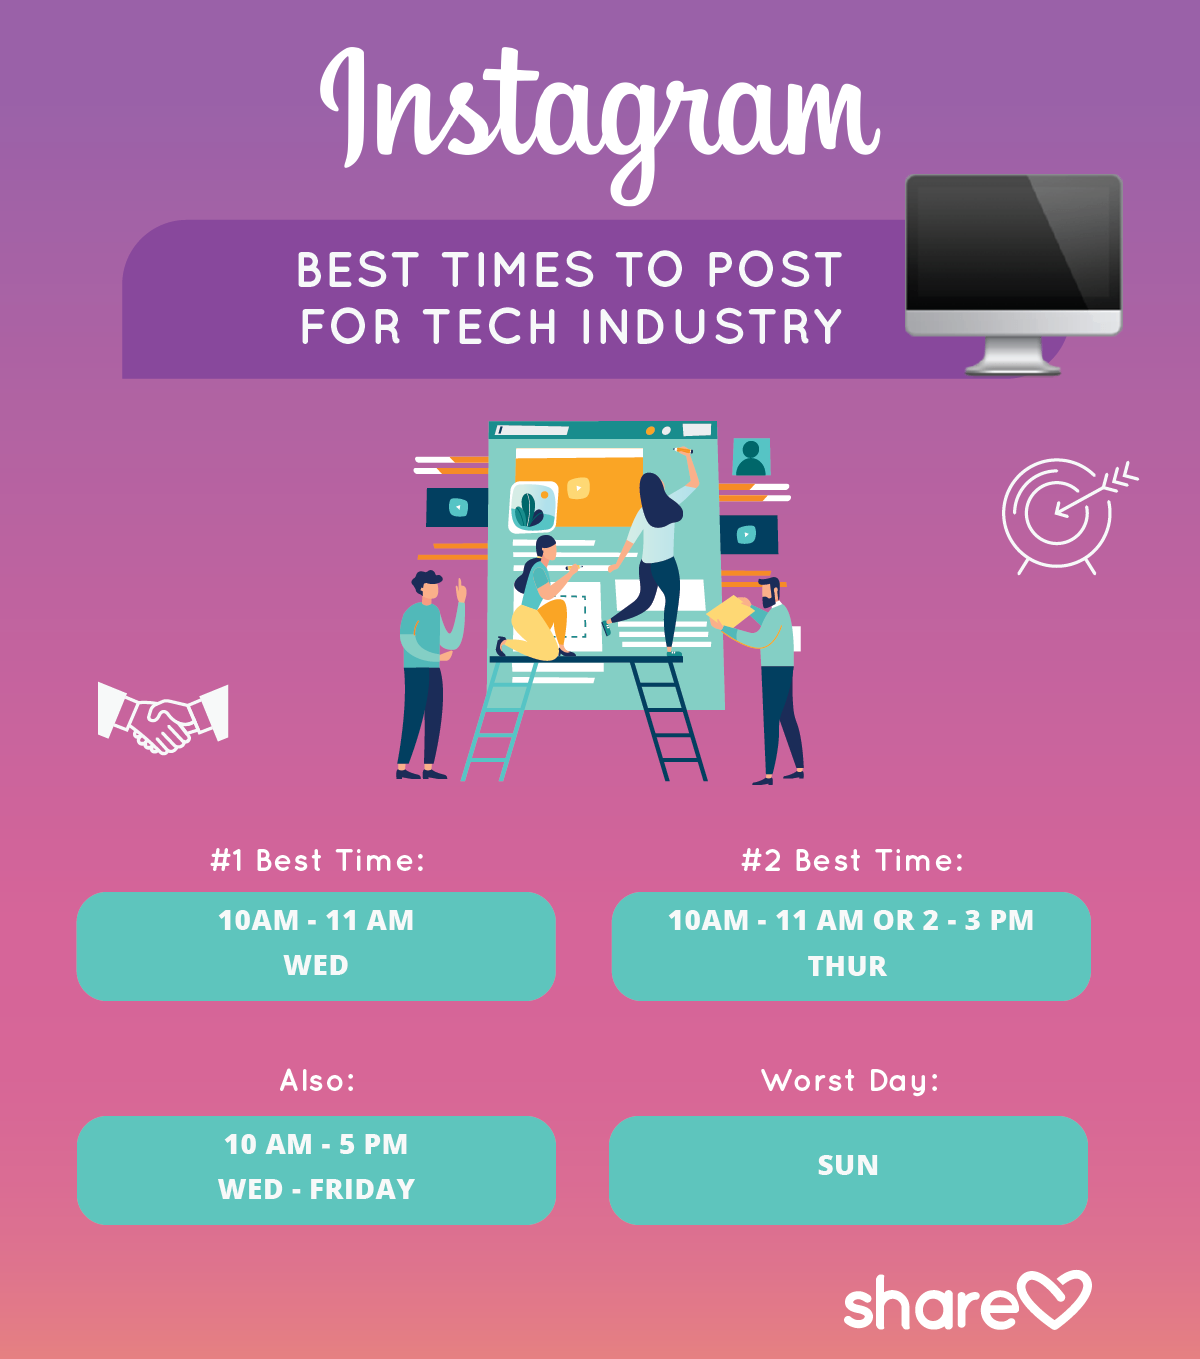 Best times to post on Instagram for tech industry